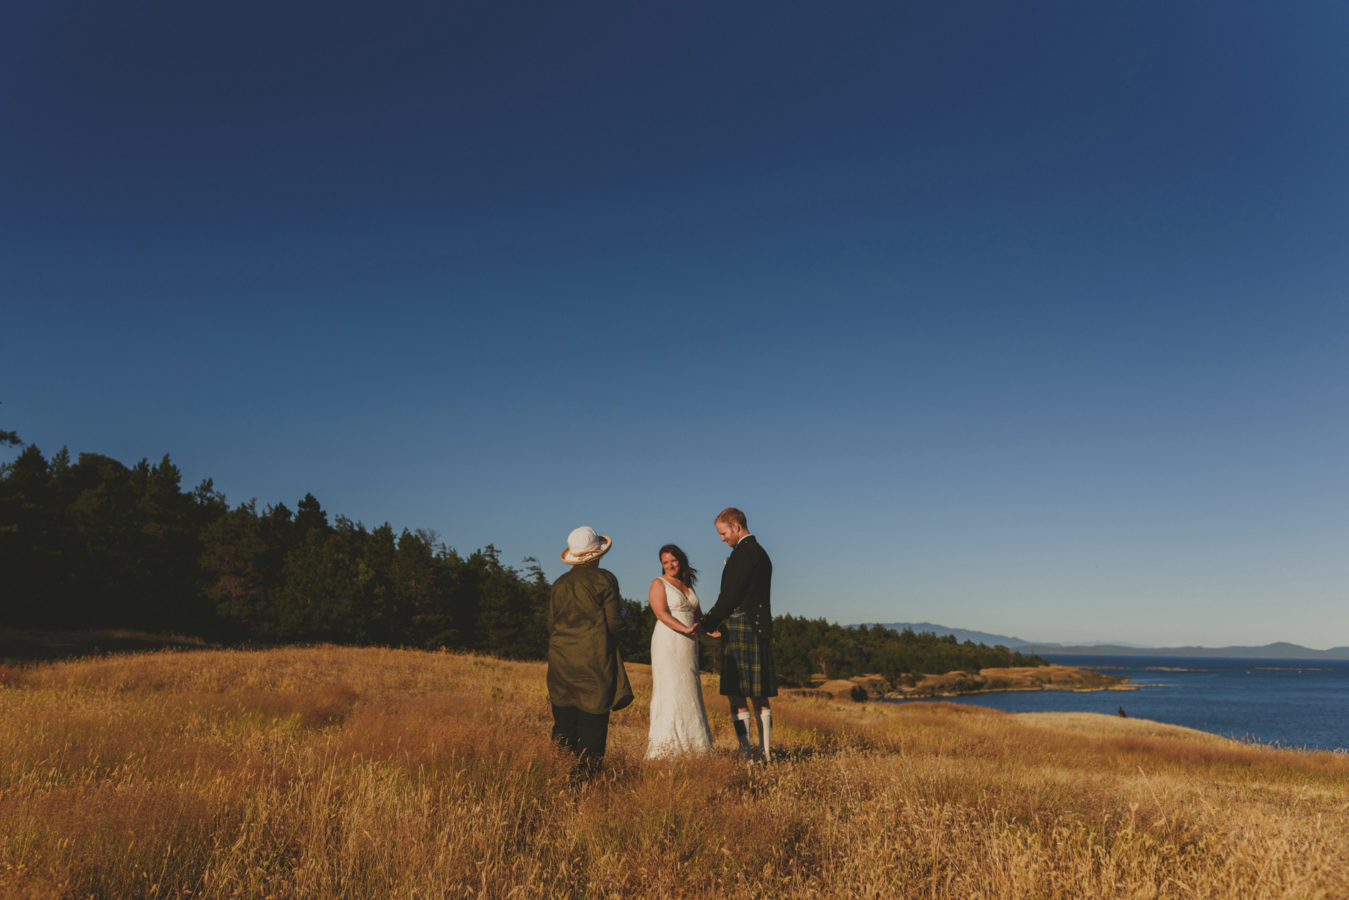 a bride and groom and officiant at their elopement ceremony on a grassy bluff overlooking the ocean